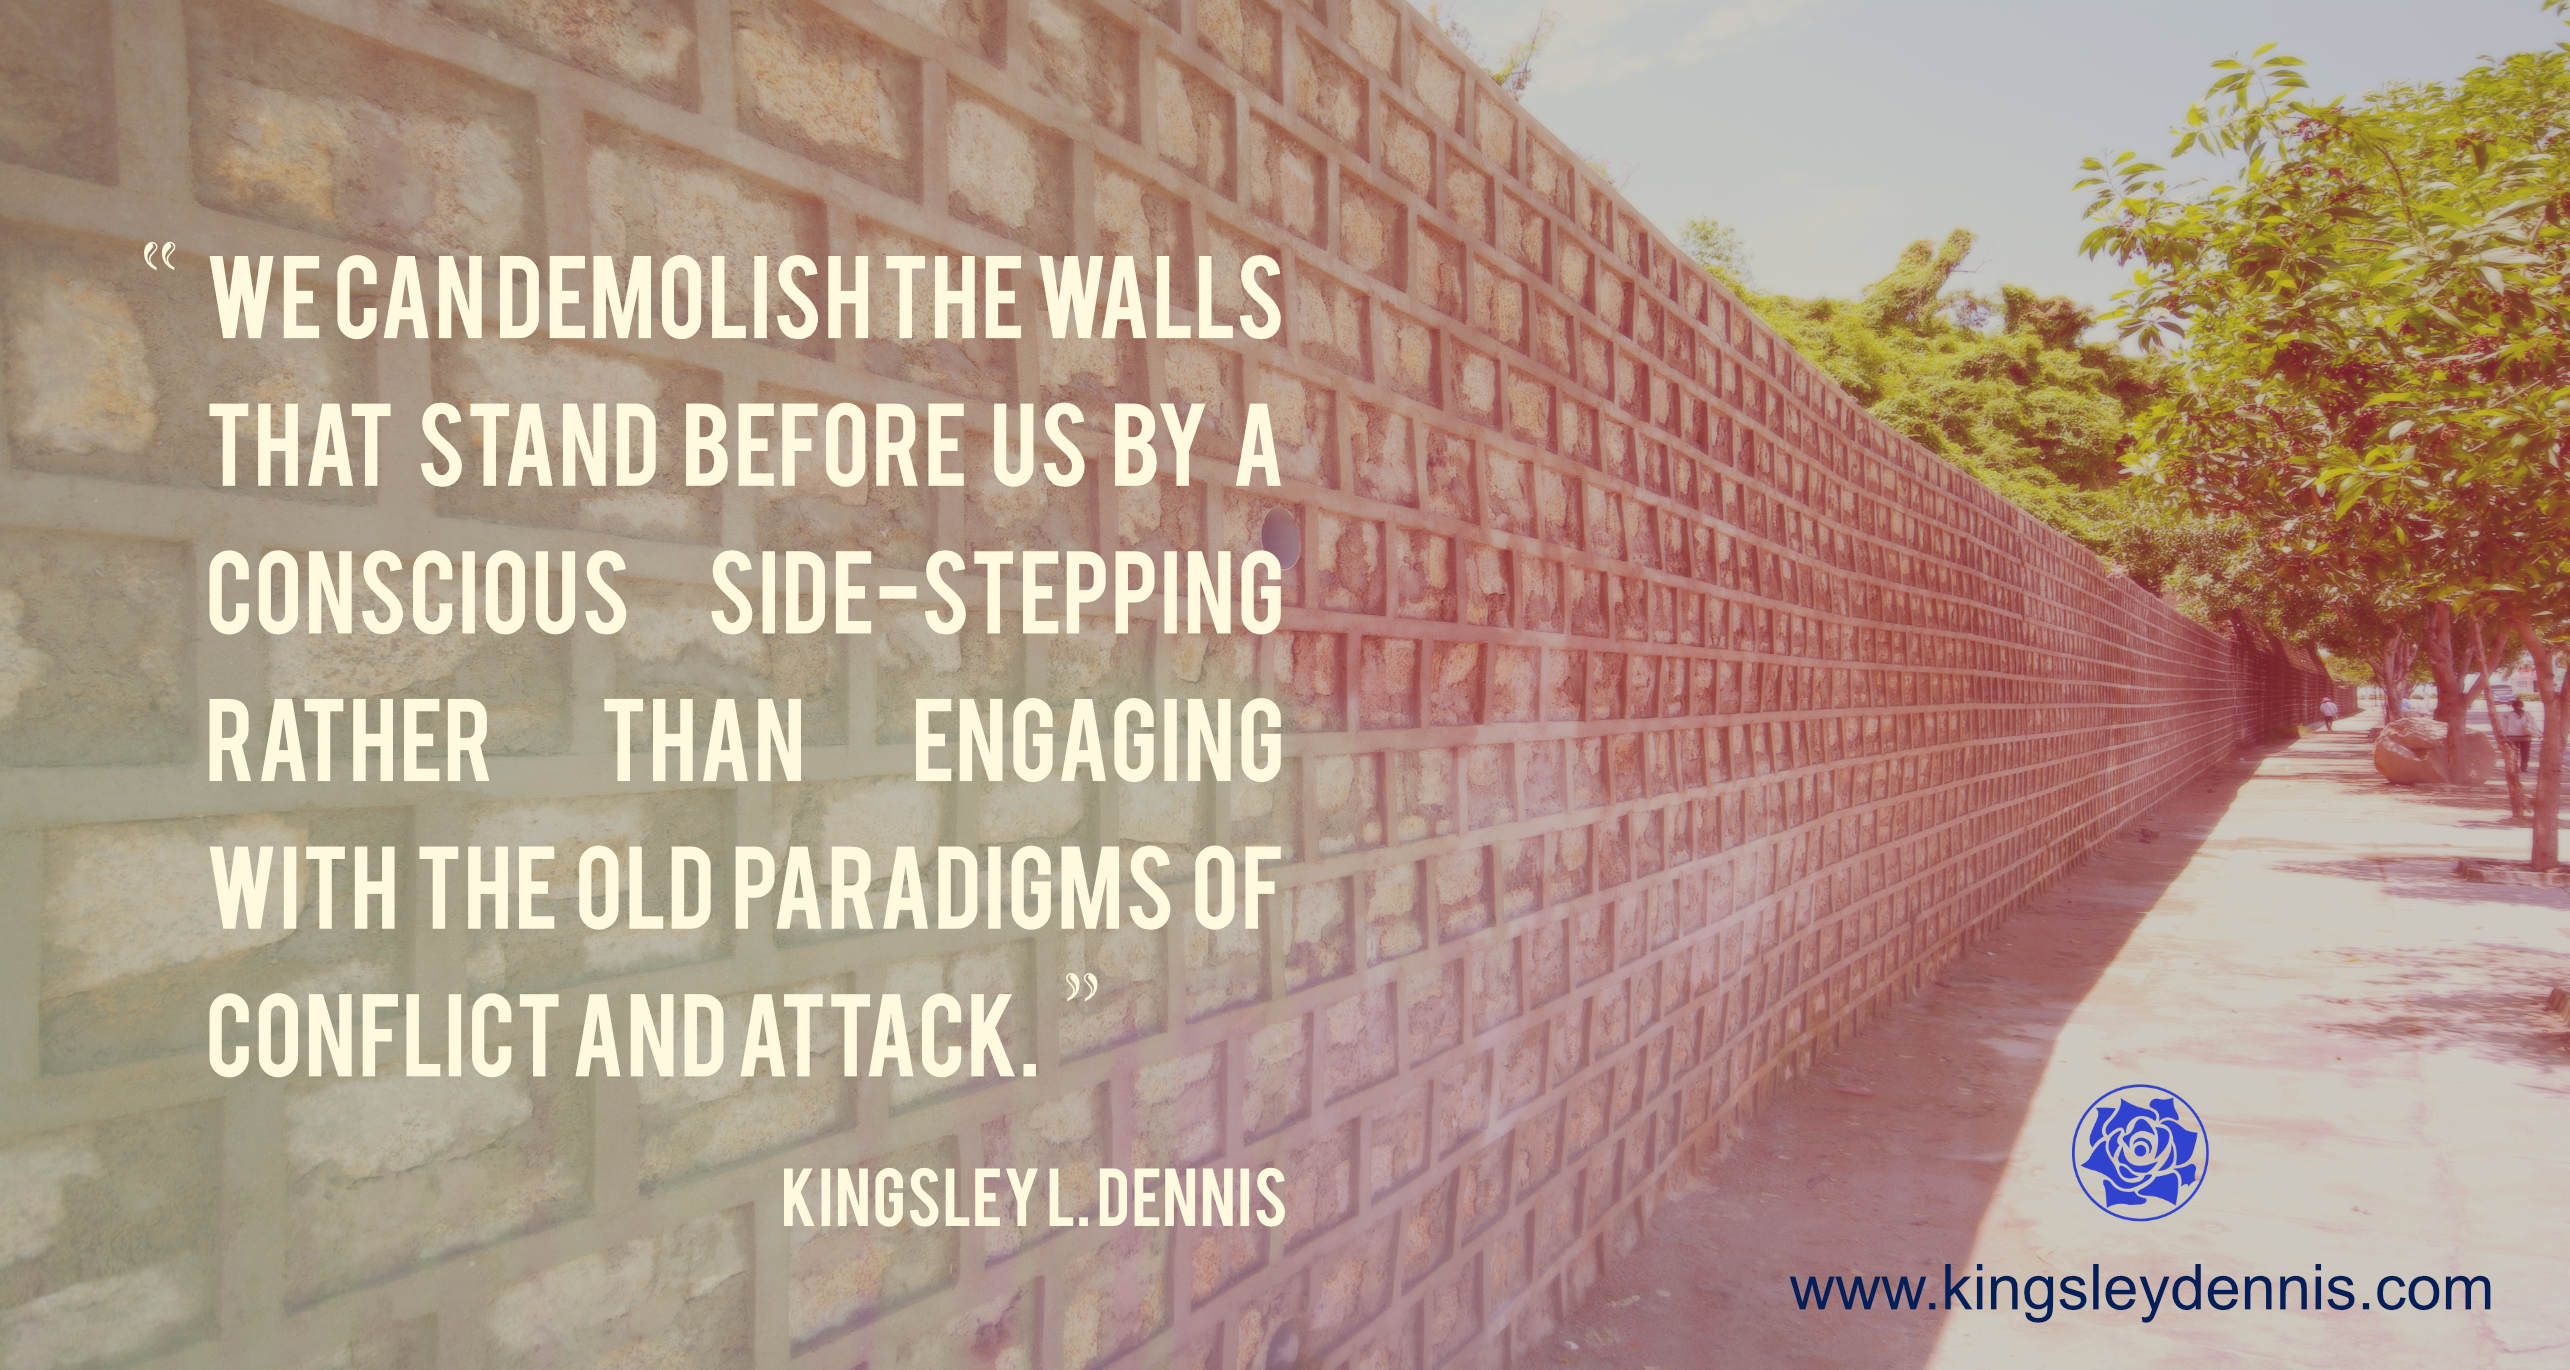 We can demolish the walls that stand before us by a conscious side-stepping rather than engaging with the old paradigms of conflict and attack.